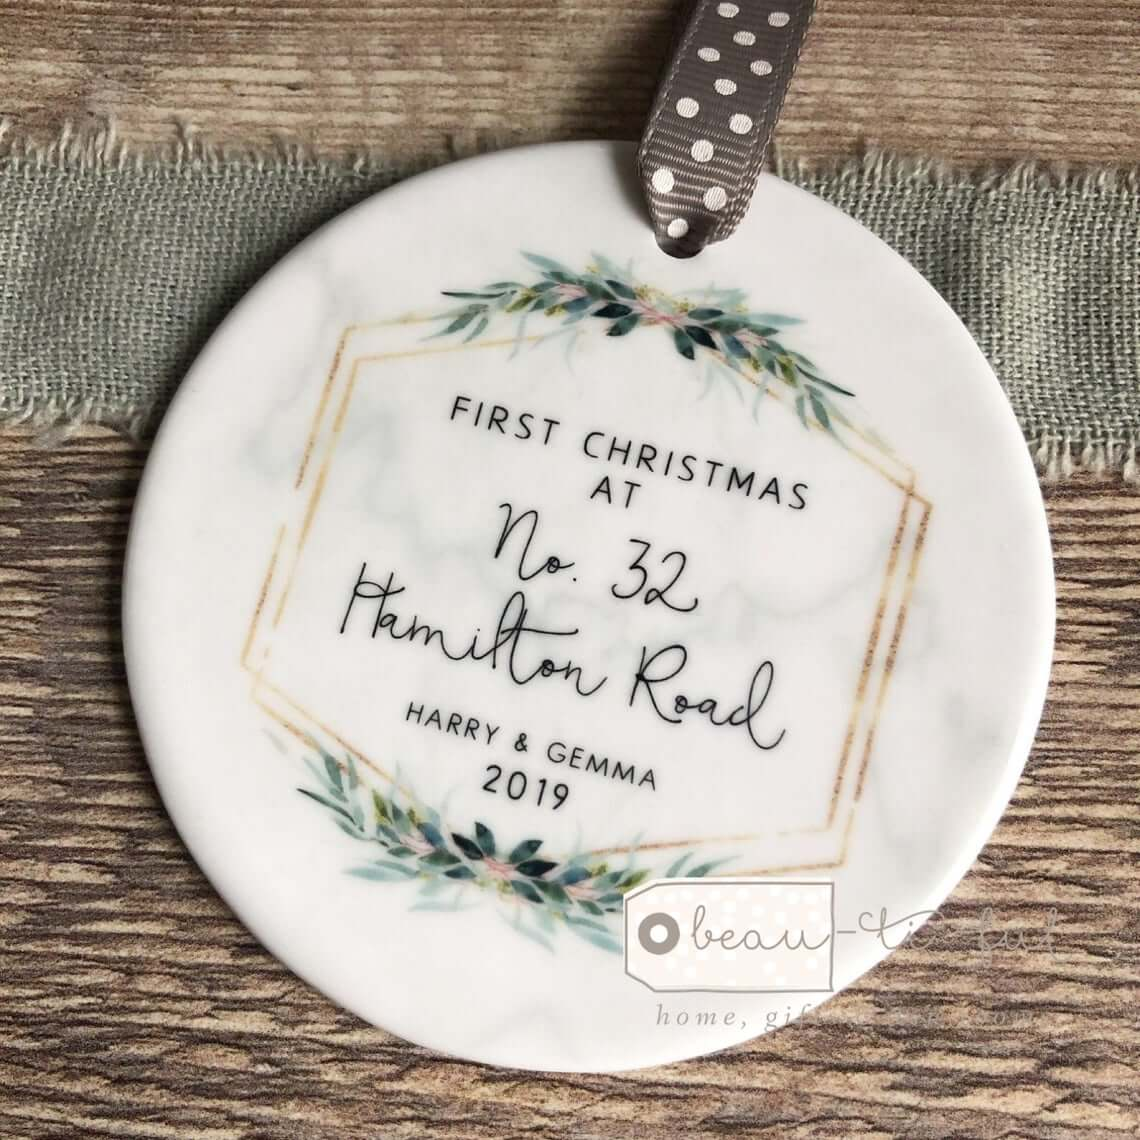 Commemorative Ornament for Holiday Decoration